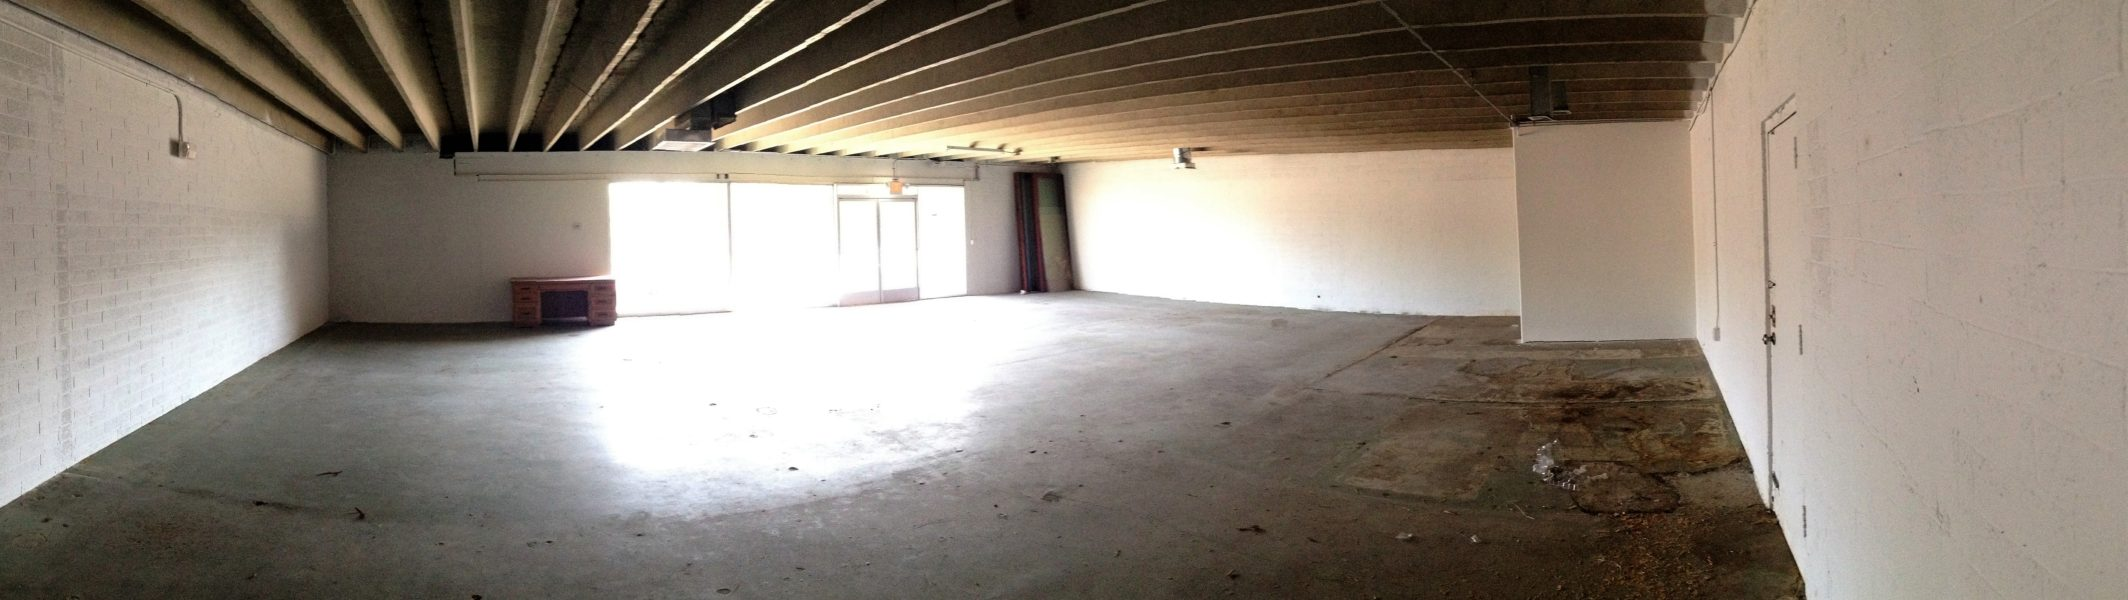 <p>Teaser: Here is the existing shell space for a great new build out in Phoenix on the boards at Reset Studios. Awesome bones of 4&#8243; high concrete block units and a roof of exposed concrete double T&#8217;s. This  3,227 SF project is part of a larger project with an awesome [&hellip;]</p>